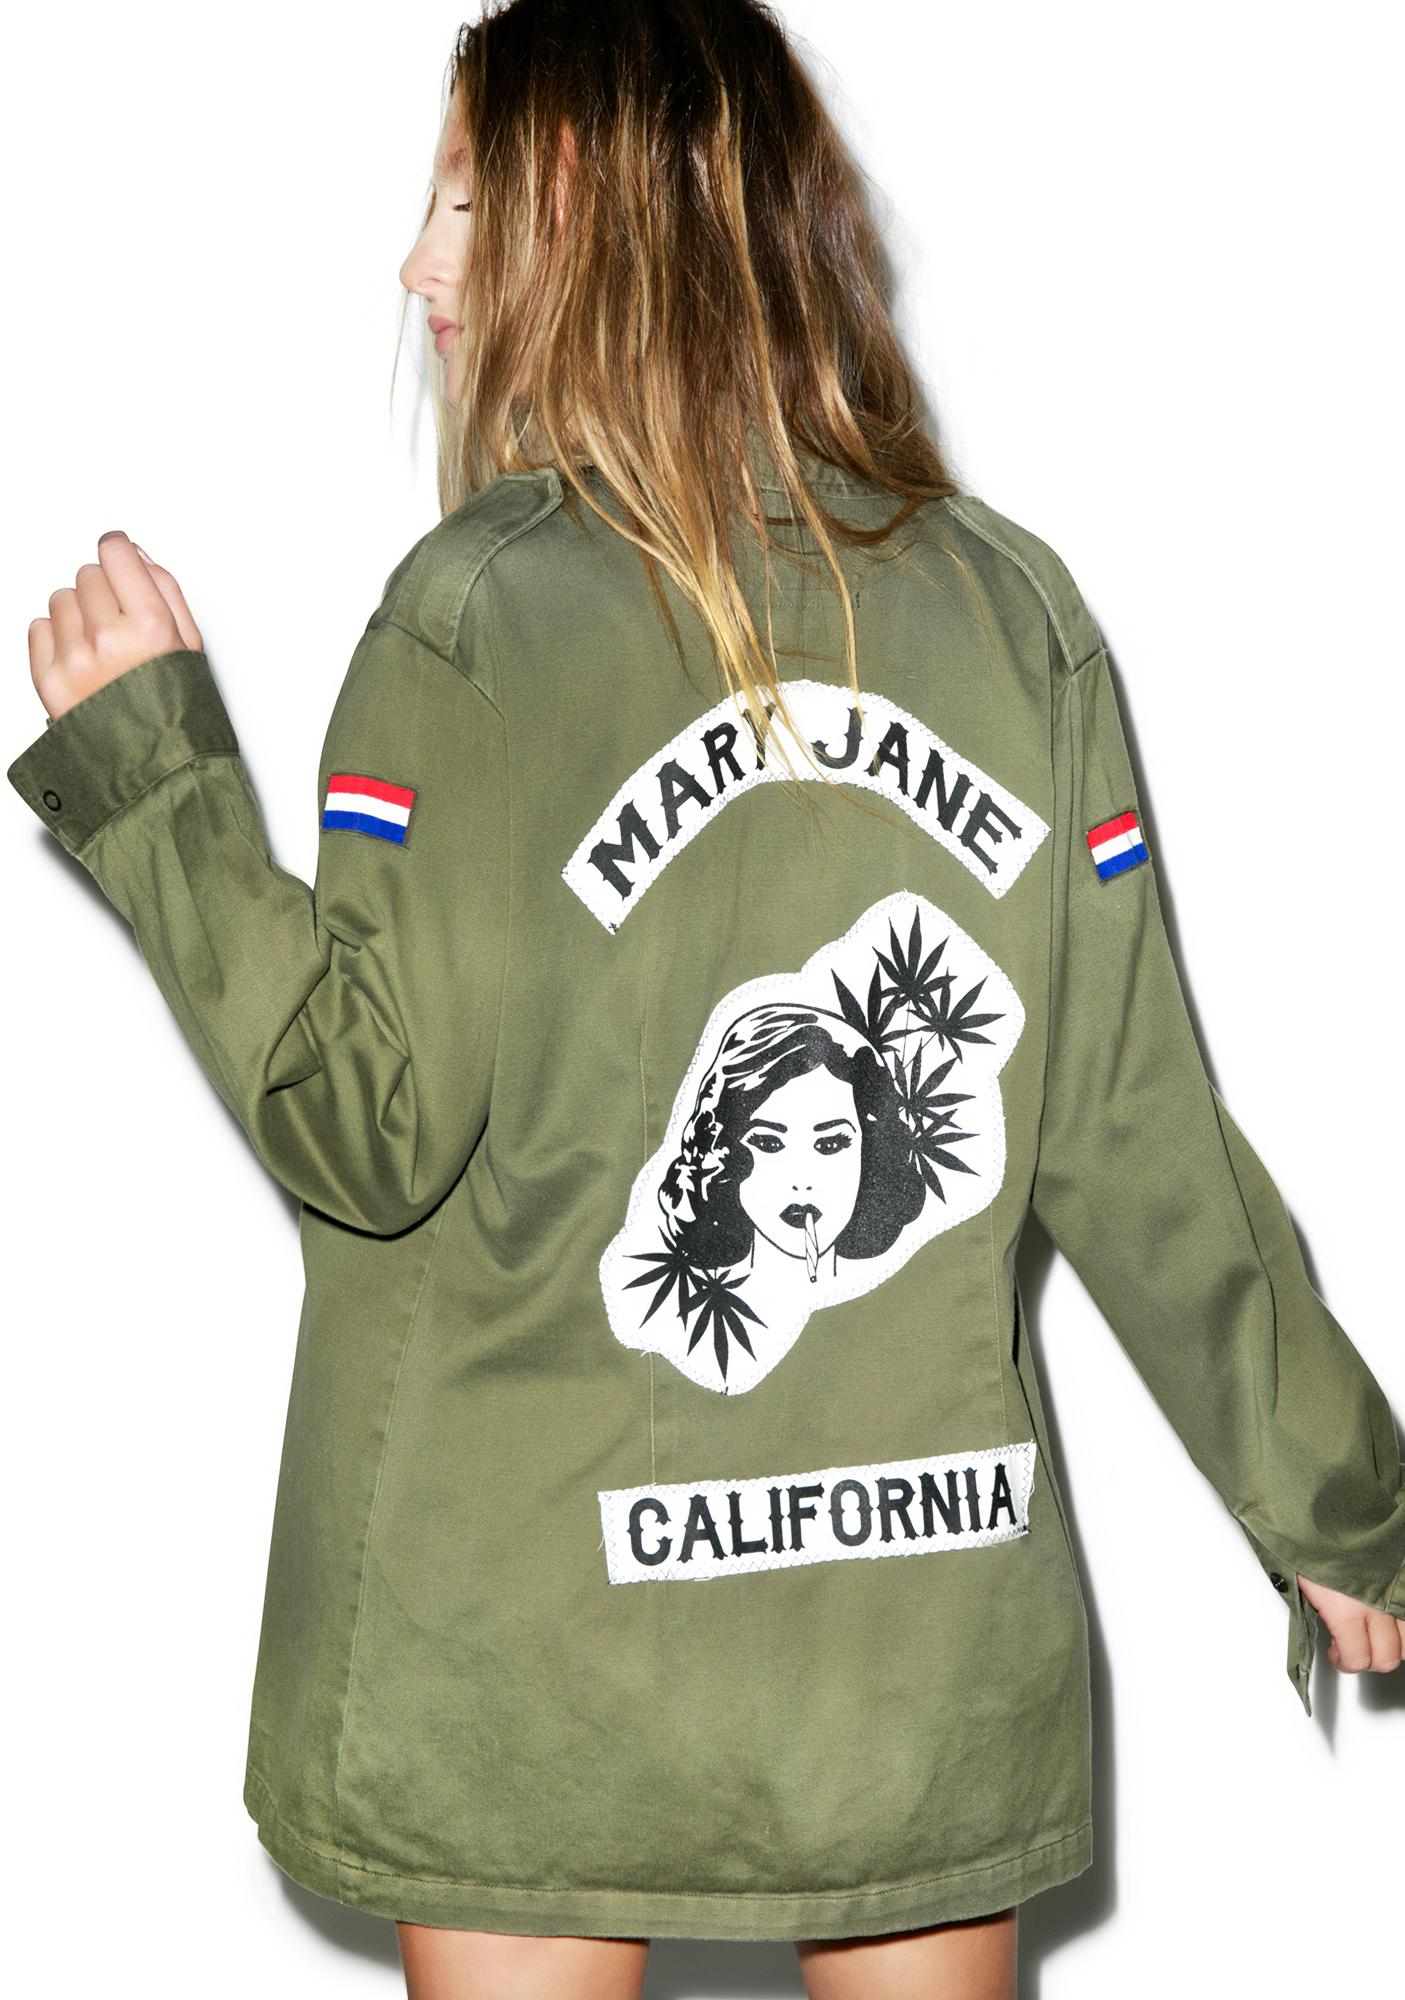 Mary Jane Gang Jacket